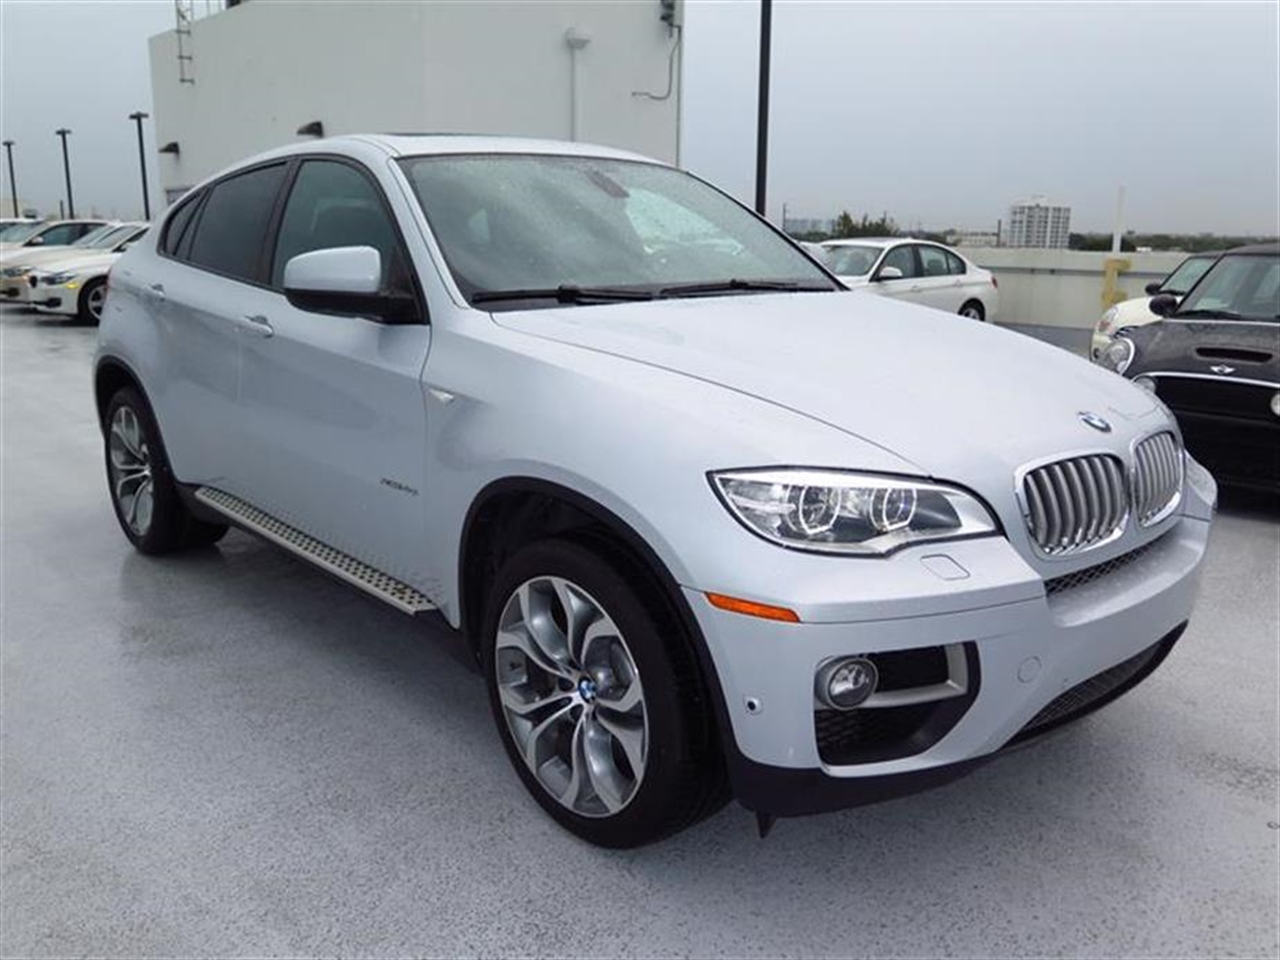 2013 BMW X6 AWD 4dr xDrive50i 22767 miles 20-way power multi-contour front bucket seats -inc stan